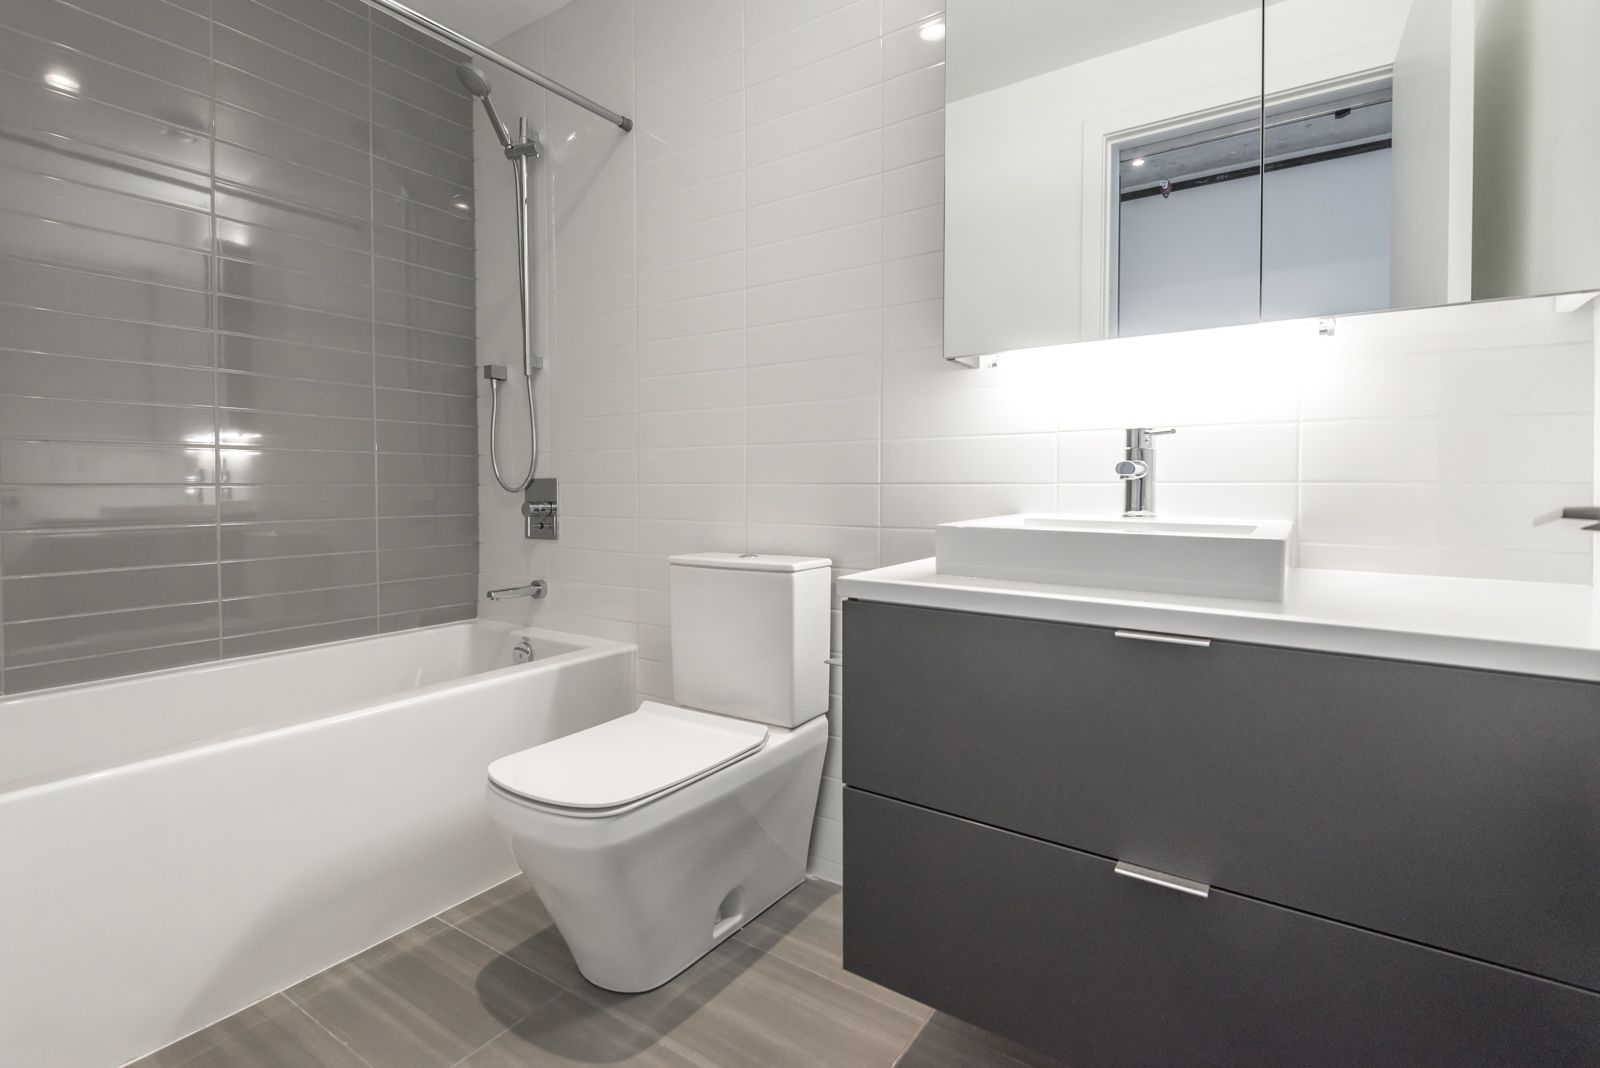 Lovely photo of master bath and tub, sink, and more.